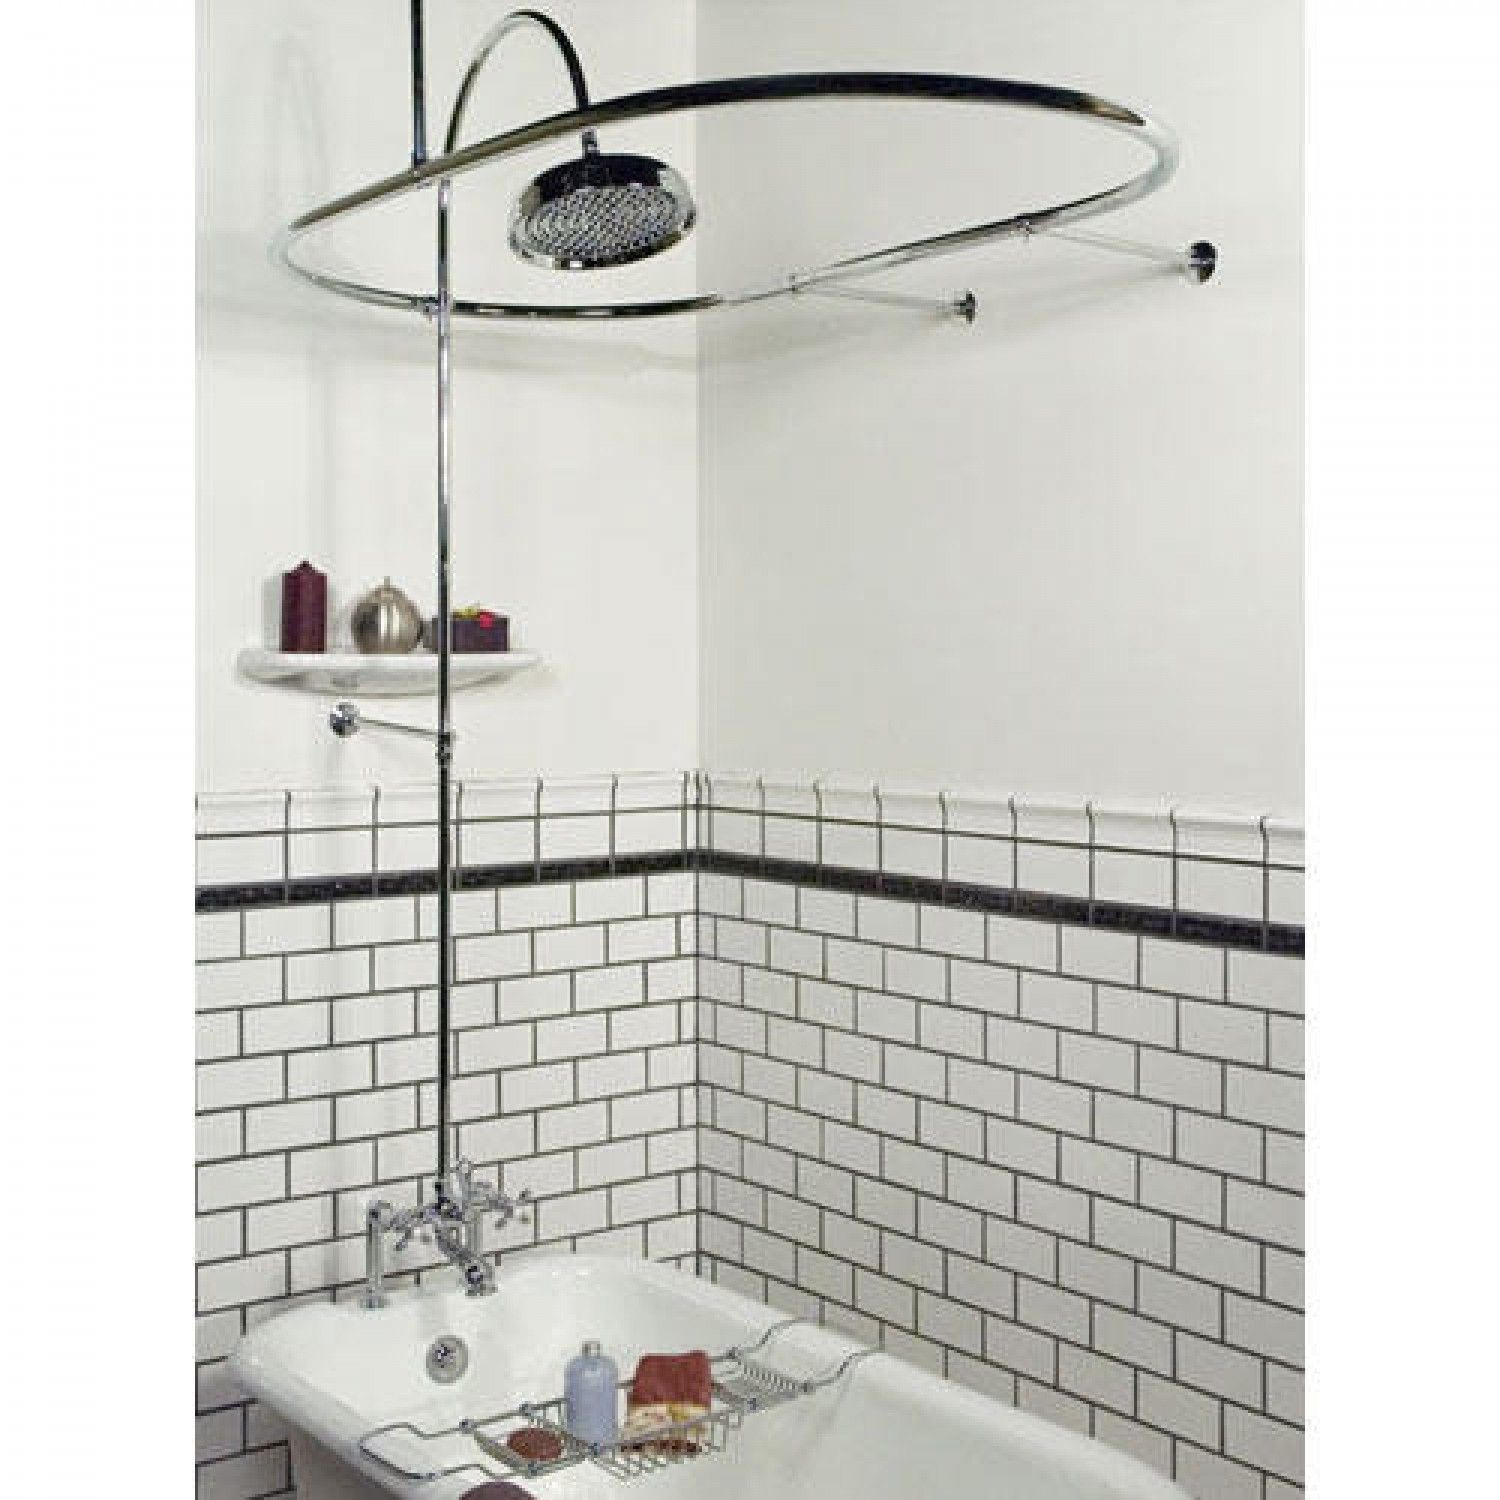 Sheffield deck mount hotel style shower conversion kit for Bathroom design kit